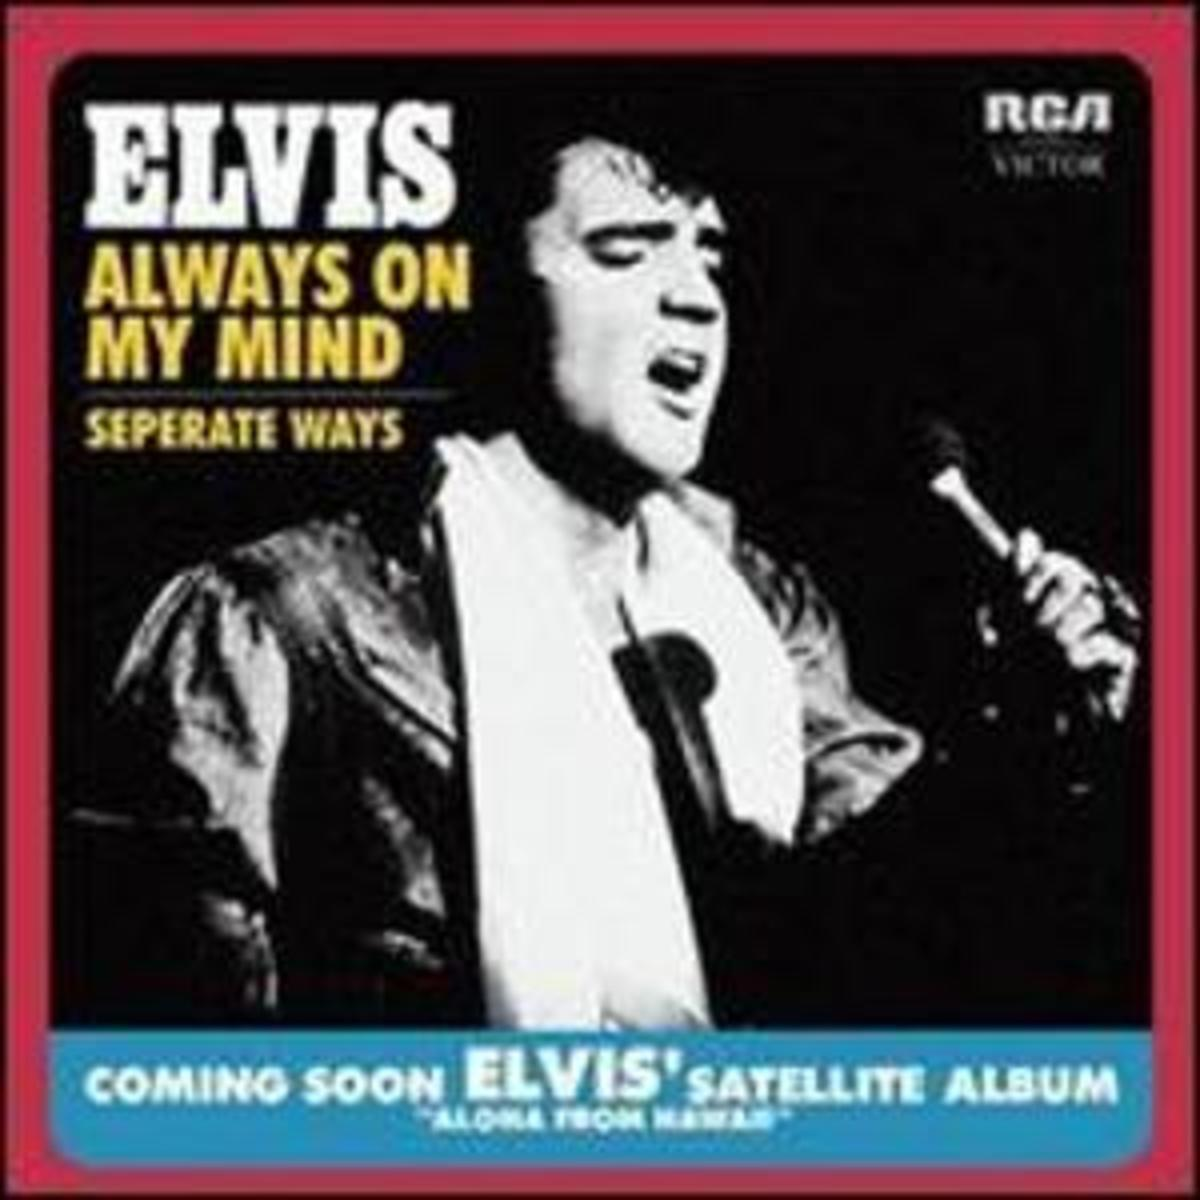 Elvis Presley - 1972 single